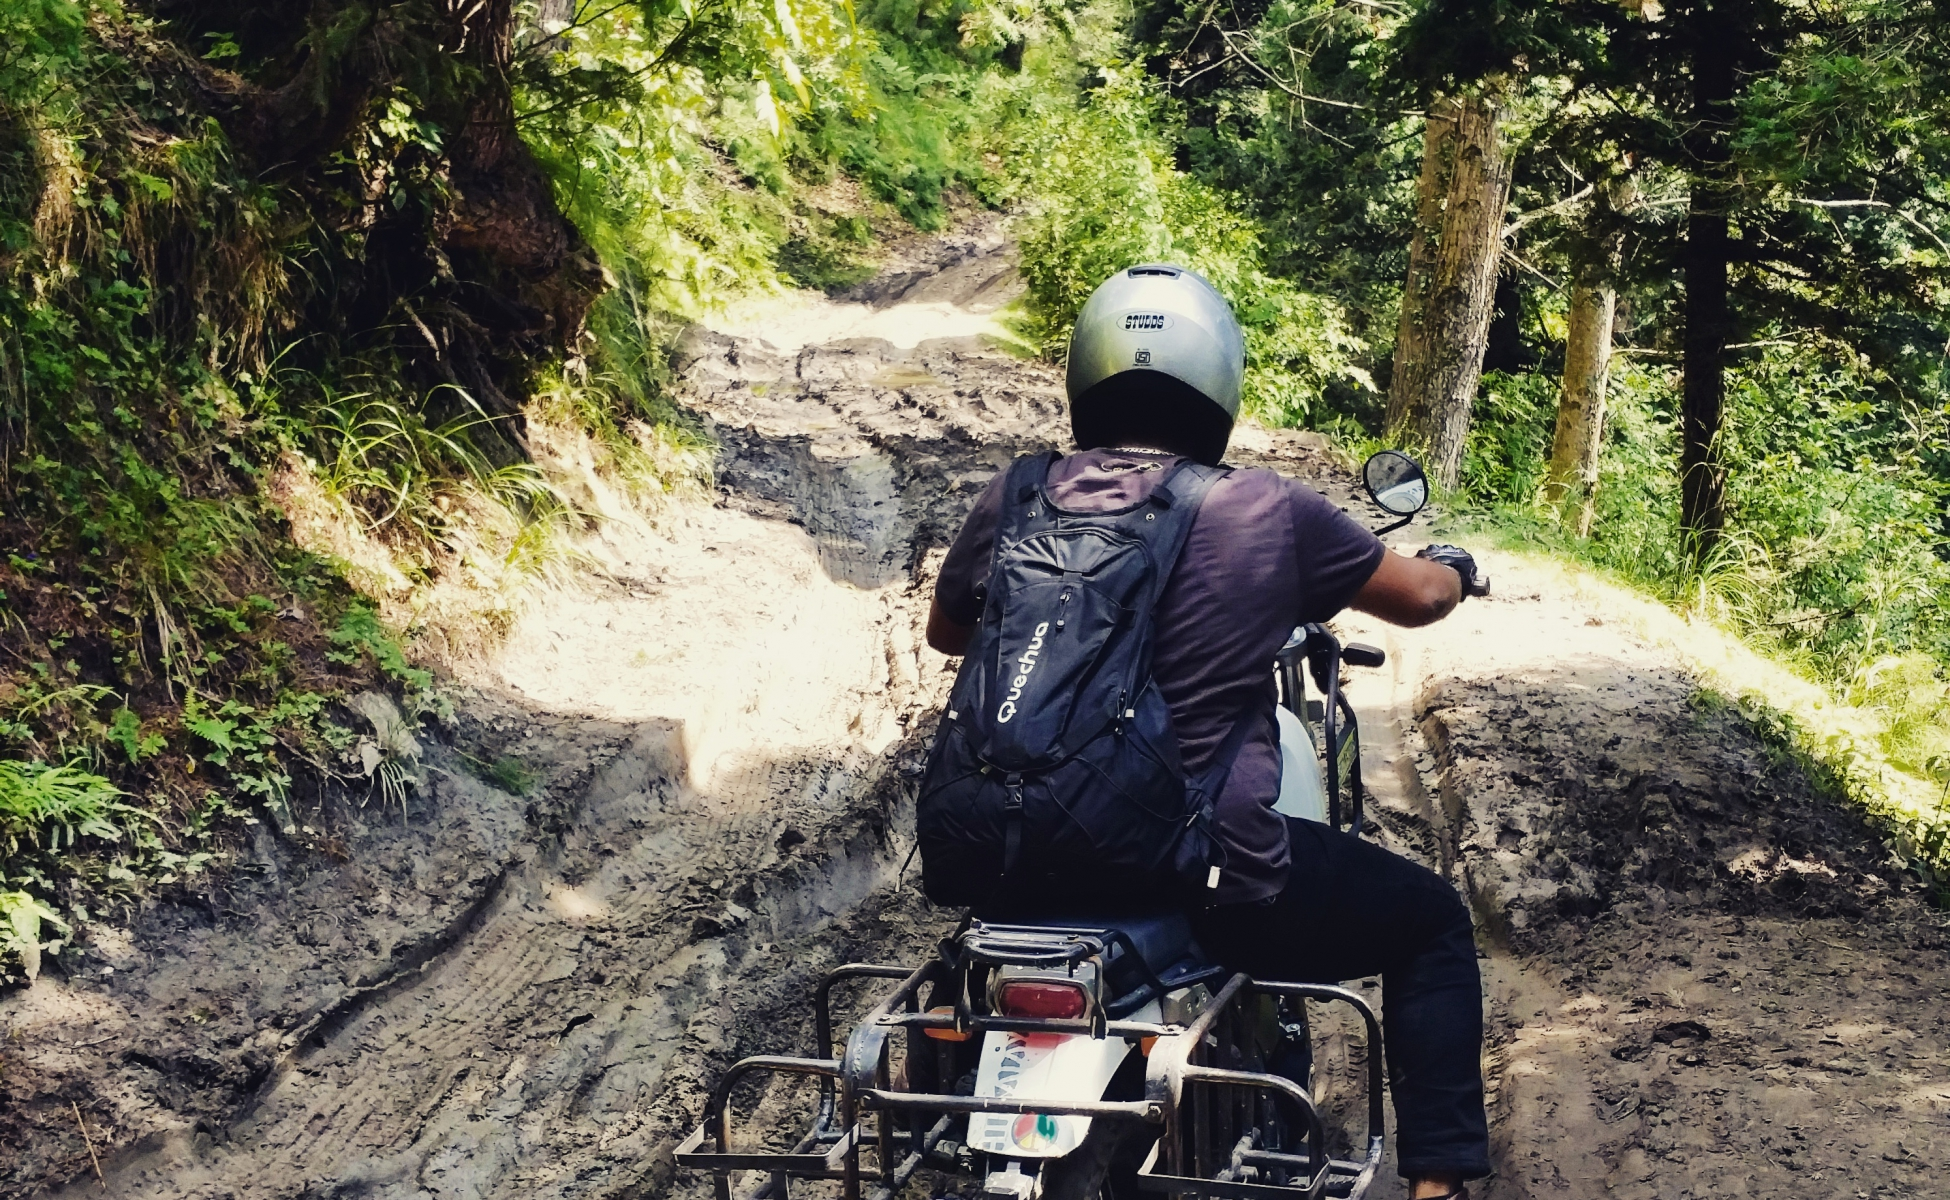 tough road lead you to awesome places - Royal enfield Himalayan